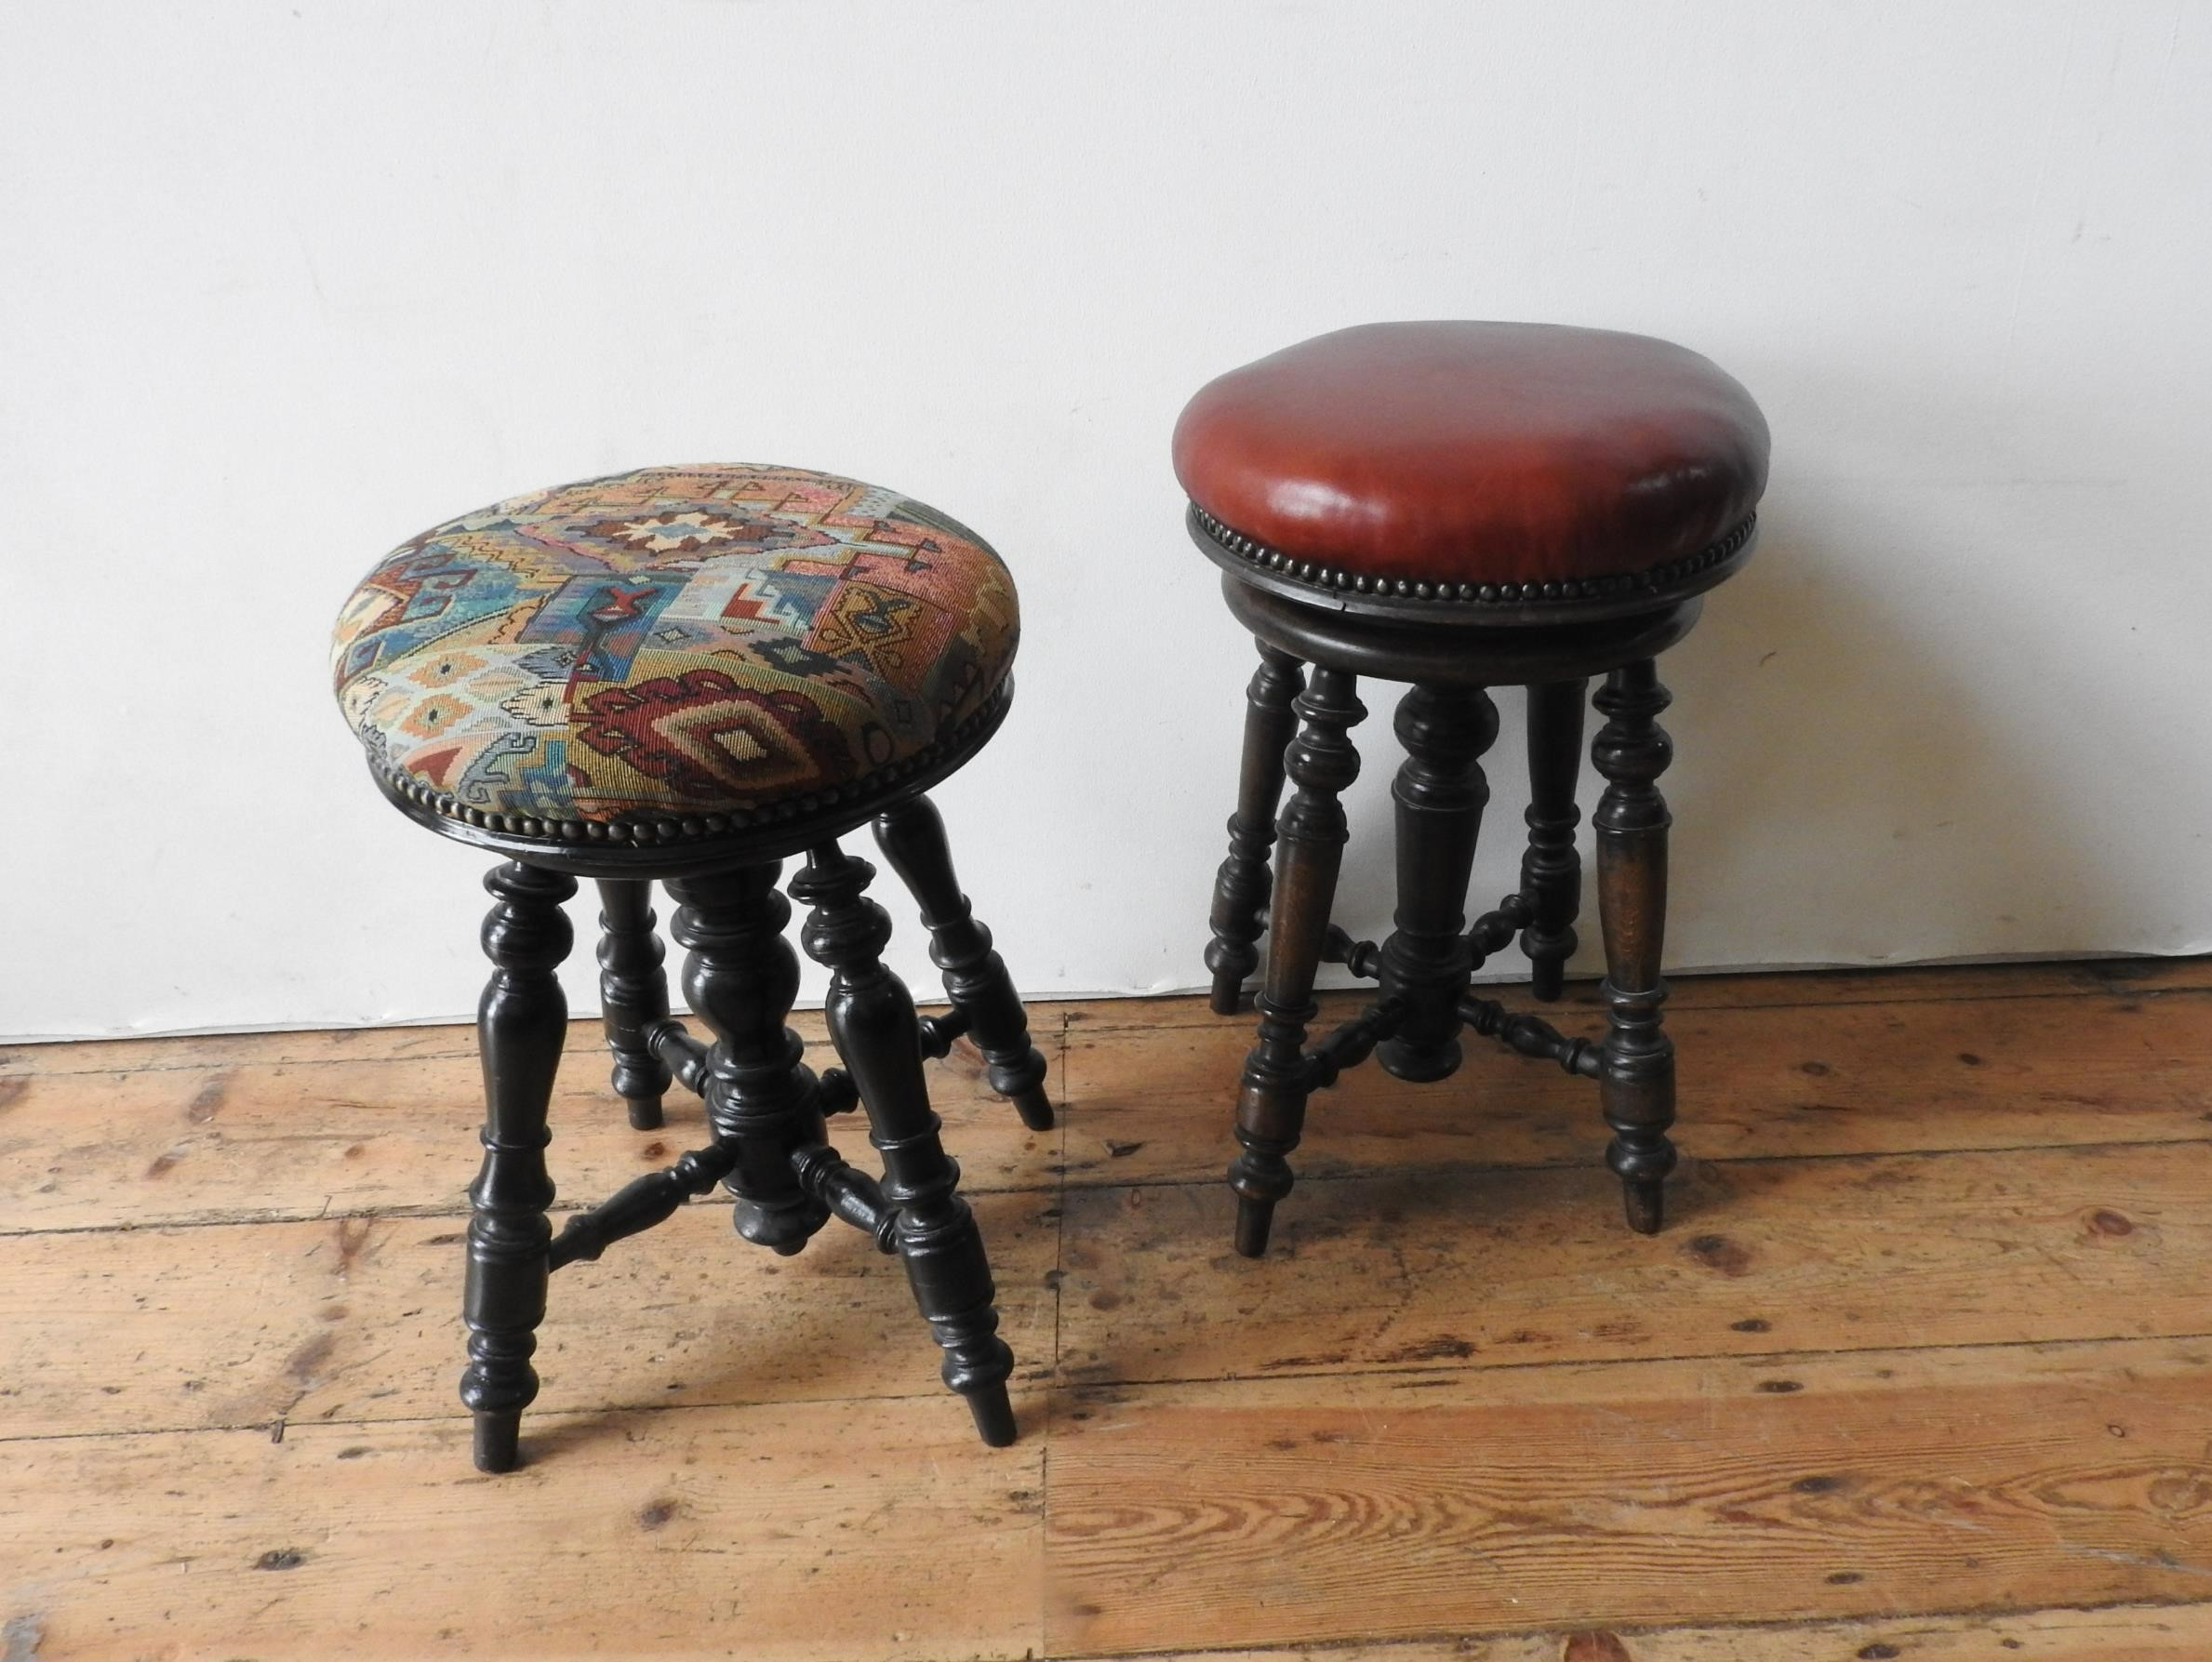 TWO VICTORIAN ADJUSTABLE CIRCULAR PIANO STOOLS, both on ornate turned oak bases, 25cm dia and - Image 2 of 2